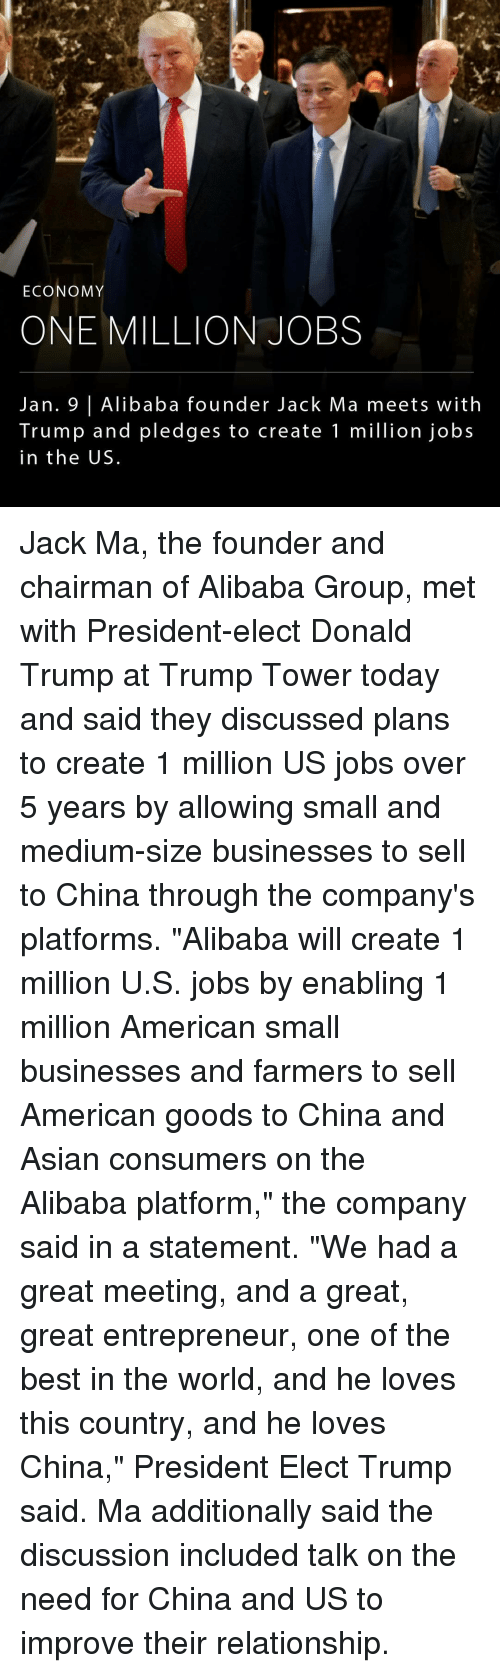 "Memes, China, and Entrepreneur: ECONOMY  ONE MILLION JOBS  Jan. 9 Alibaba founder Jack Ma meets with  Trump and pledges to create 1 million jobs  in the US. Jack Ma, the founder and chairman of Alibaba Group, met with President-elect Donald Trump at Trump Tower today and said they discussed plans to create 1 million US jobs over 5 years by allowing small and medium-size businesses to sell to China through the company's platforms. ""Alibaba will create 1 million U.S. jobs by enabling 1 million American small businesses and farmers to sell American goods to China and Asian consumers on the Alibaba platform,"" the company said in a statement. ""We had a great meeting, and a great, great entrepreneur, one of the best in the world, and he loves this country, and he loves China,"" President Elect Trump said. Ma additionally said the discussion included talk on the need for China and US to improve their relationship."